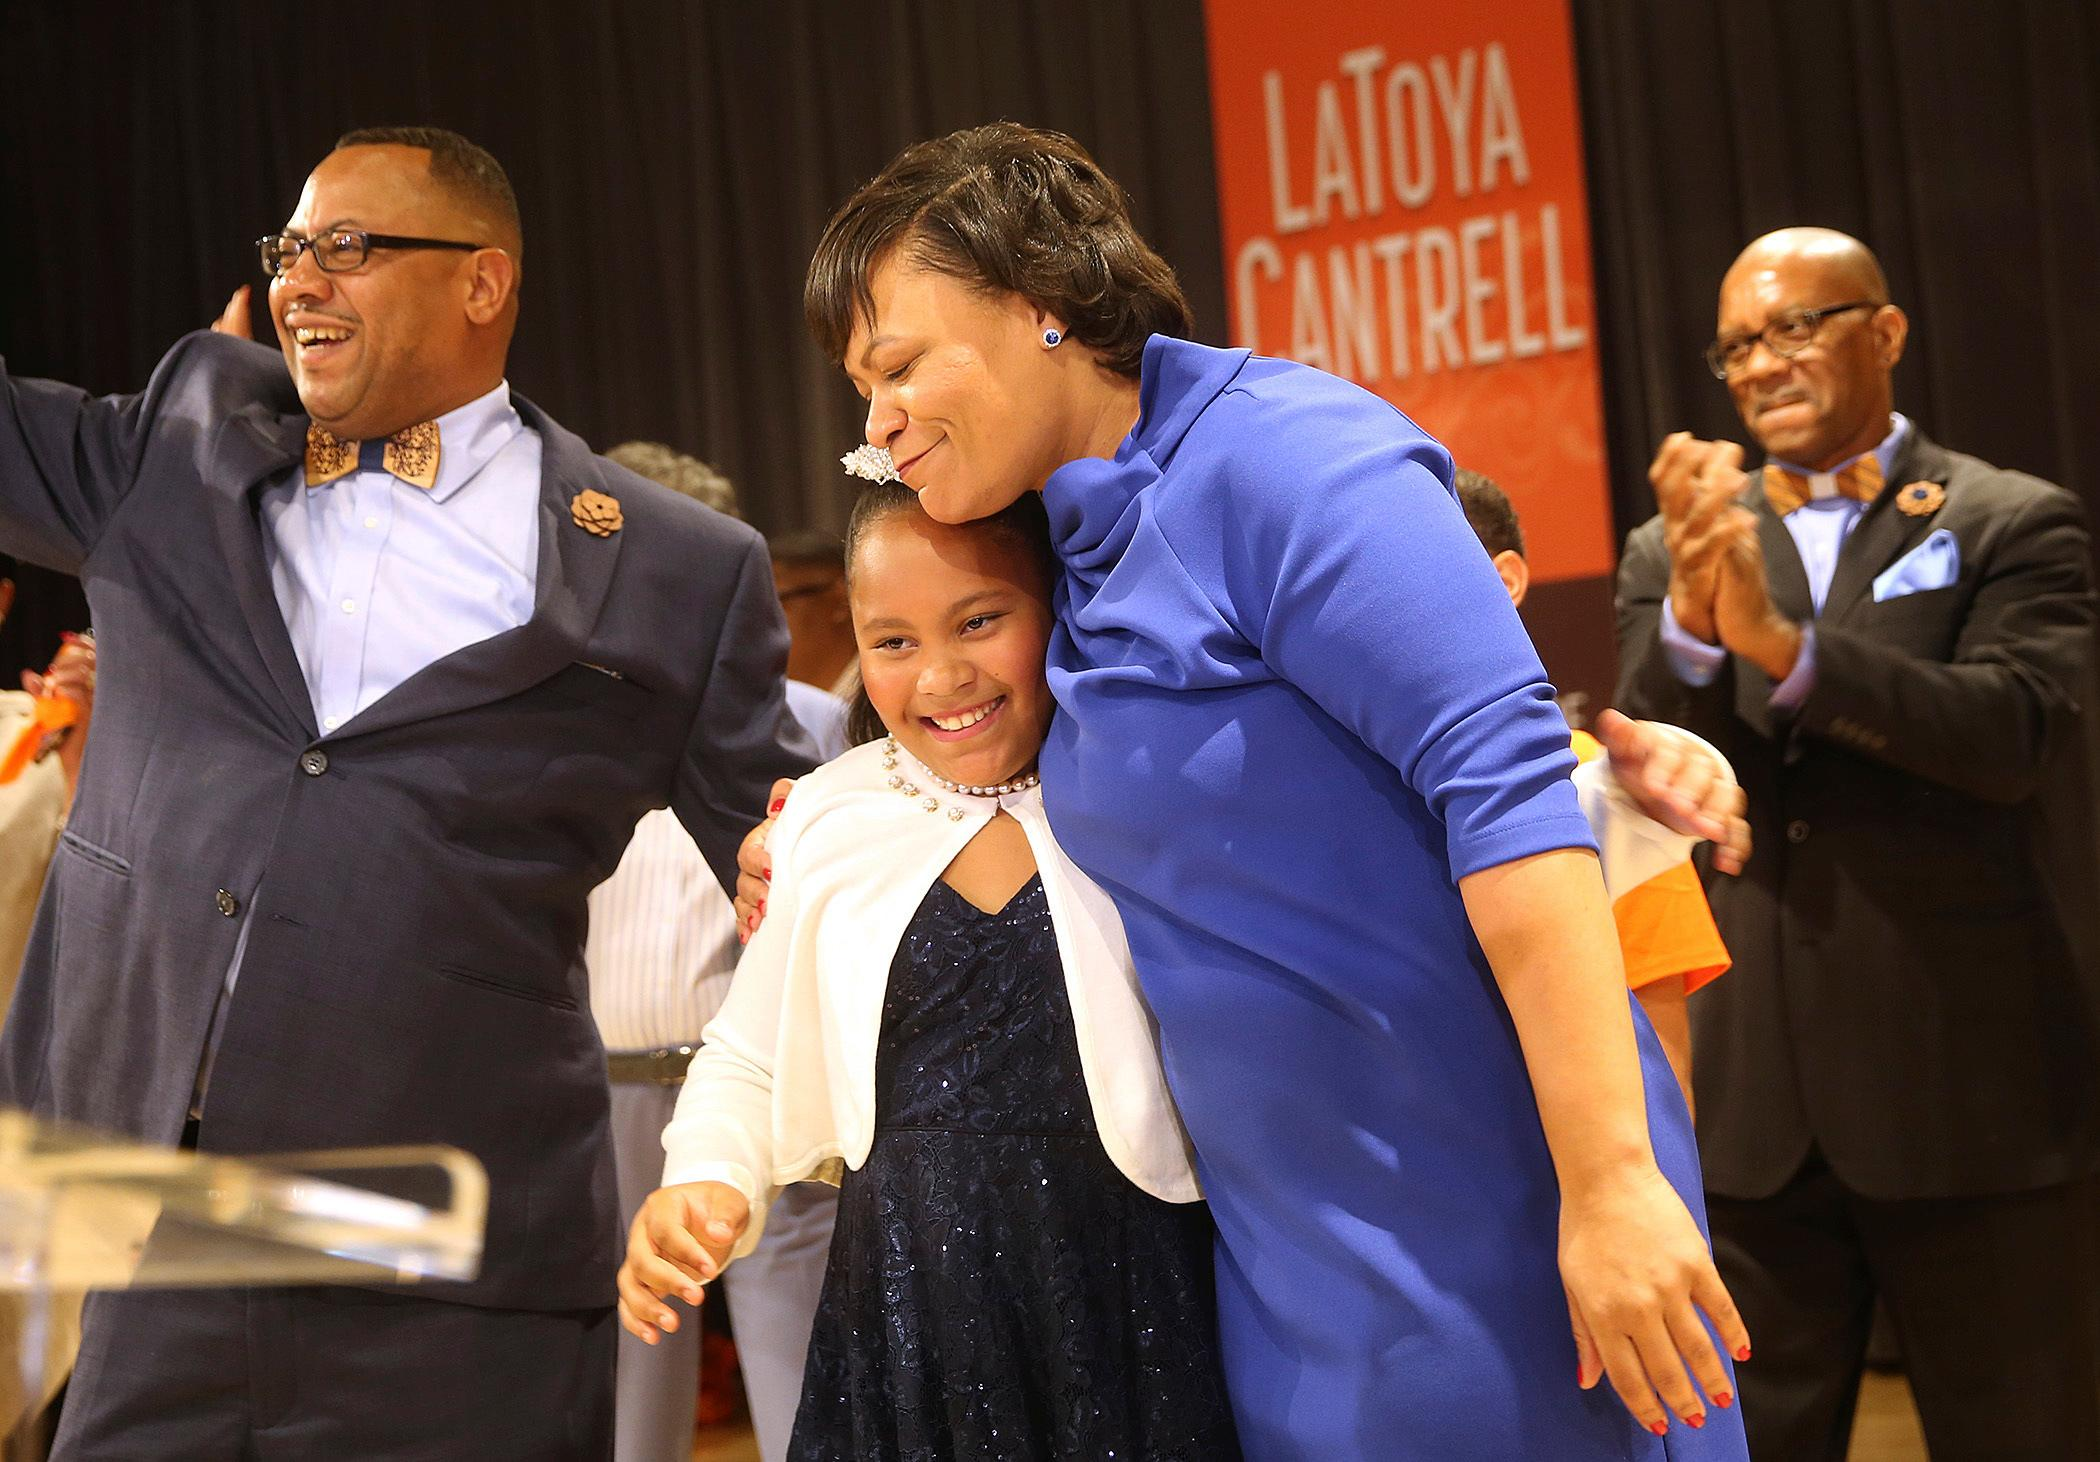 LaToya Cantrell hugs her daughter RayAnn as she celebrates her victory in the New Orleans mayoral election during her election party at the New Orleans Jazz Market in Central City, Saturday, Nov. 18, 2017, in New Orleans. Cantrell, a City Council member who gained a political following as she worked to help her hard-hit neighborhood recover from Hurricane Katrina, was the victor Saturday night in an election that will make her the first woman mayor in New Orleans' history. (Michael DeMocker/NOLA.com The Times-Picayune via AP)